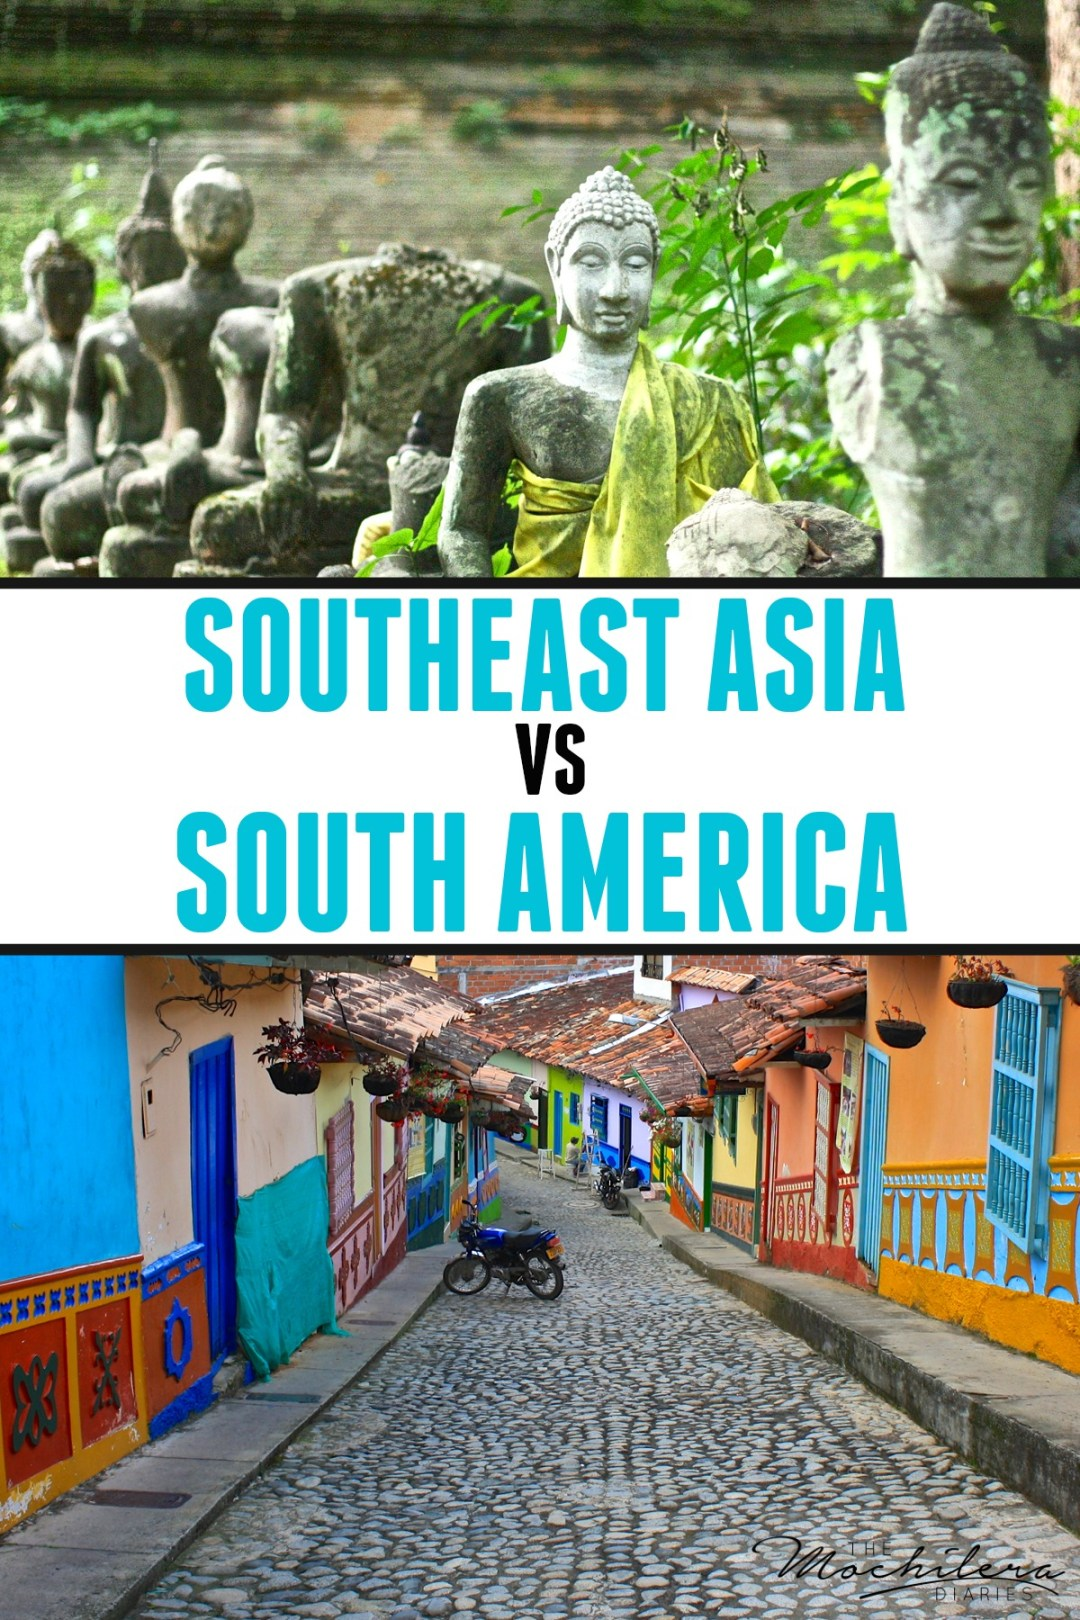 South America or Southeast Asia: Which do you think is the ultimate backpacking destination?